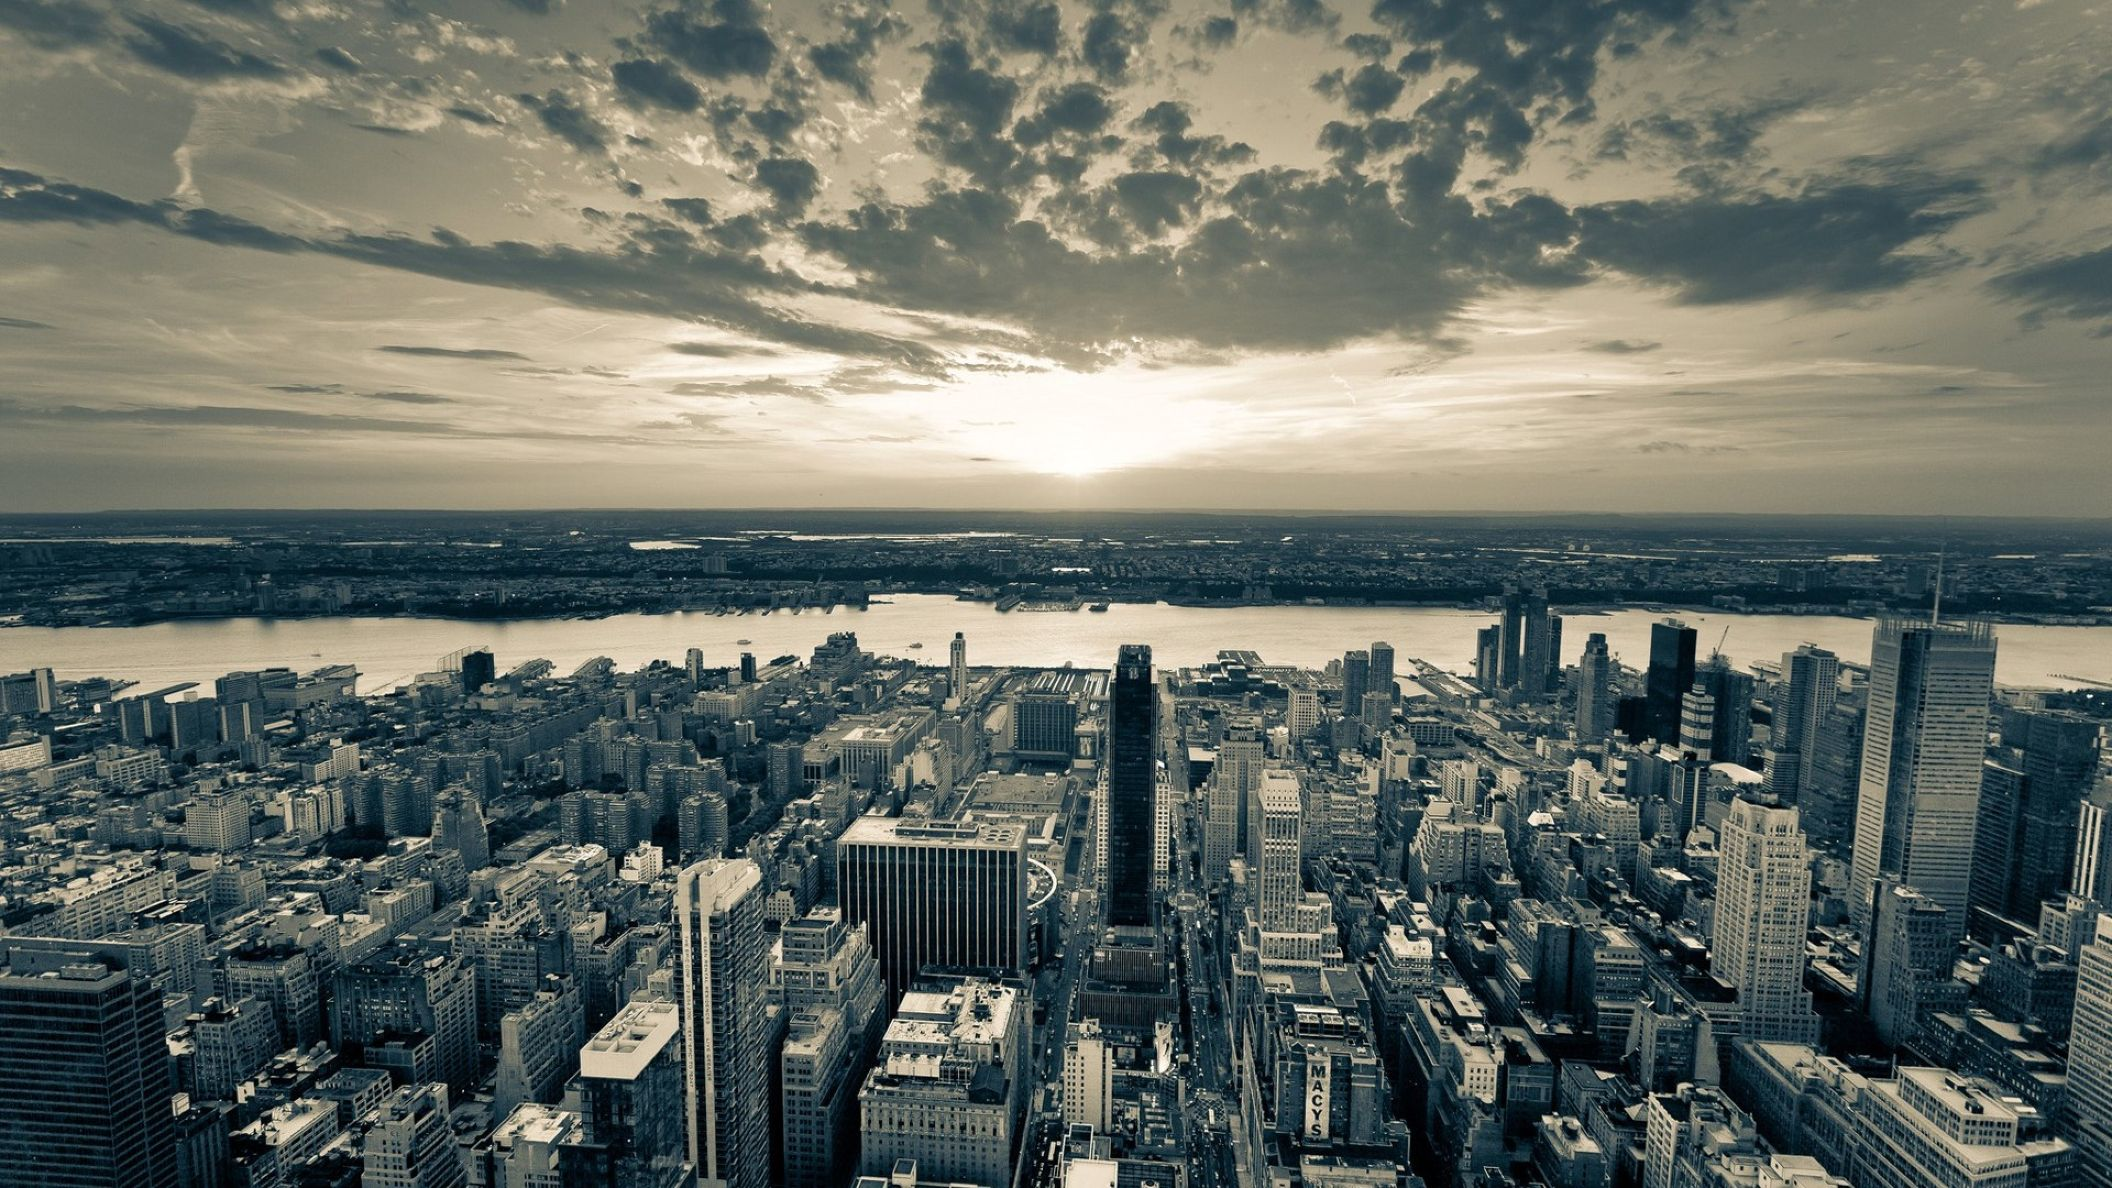 new york city hd black and white wallpaper desktop hd